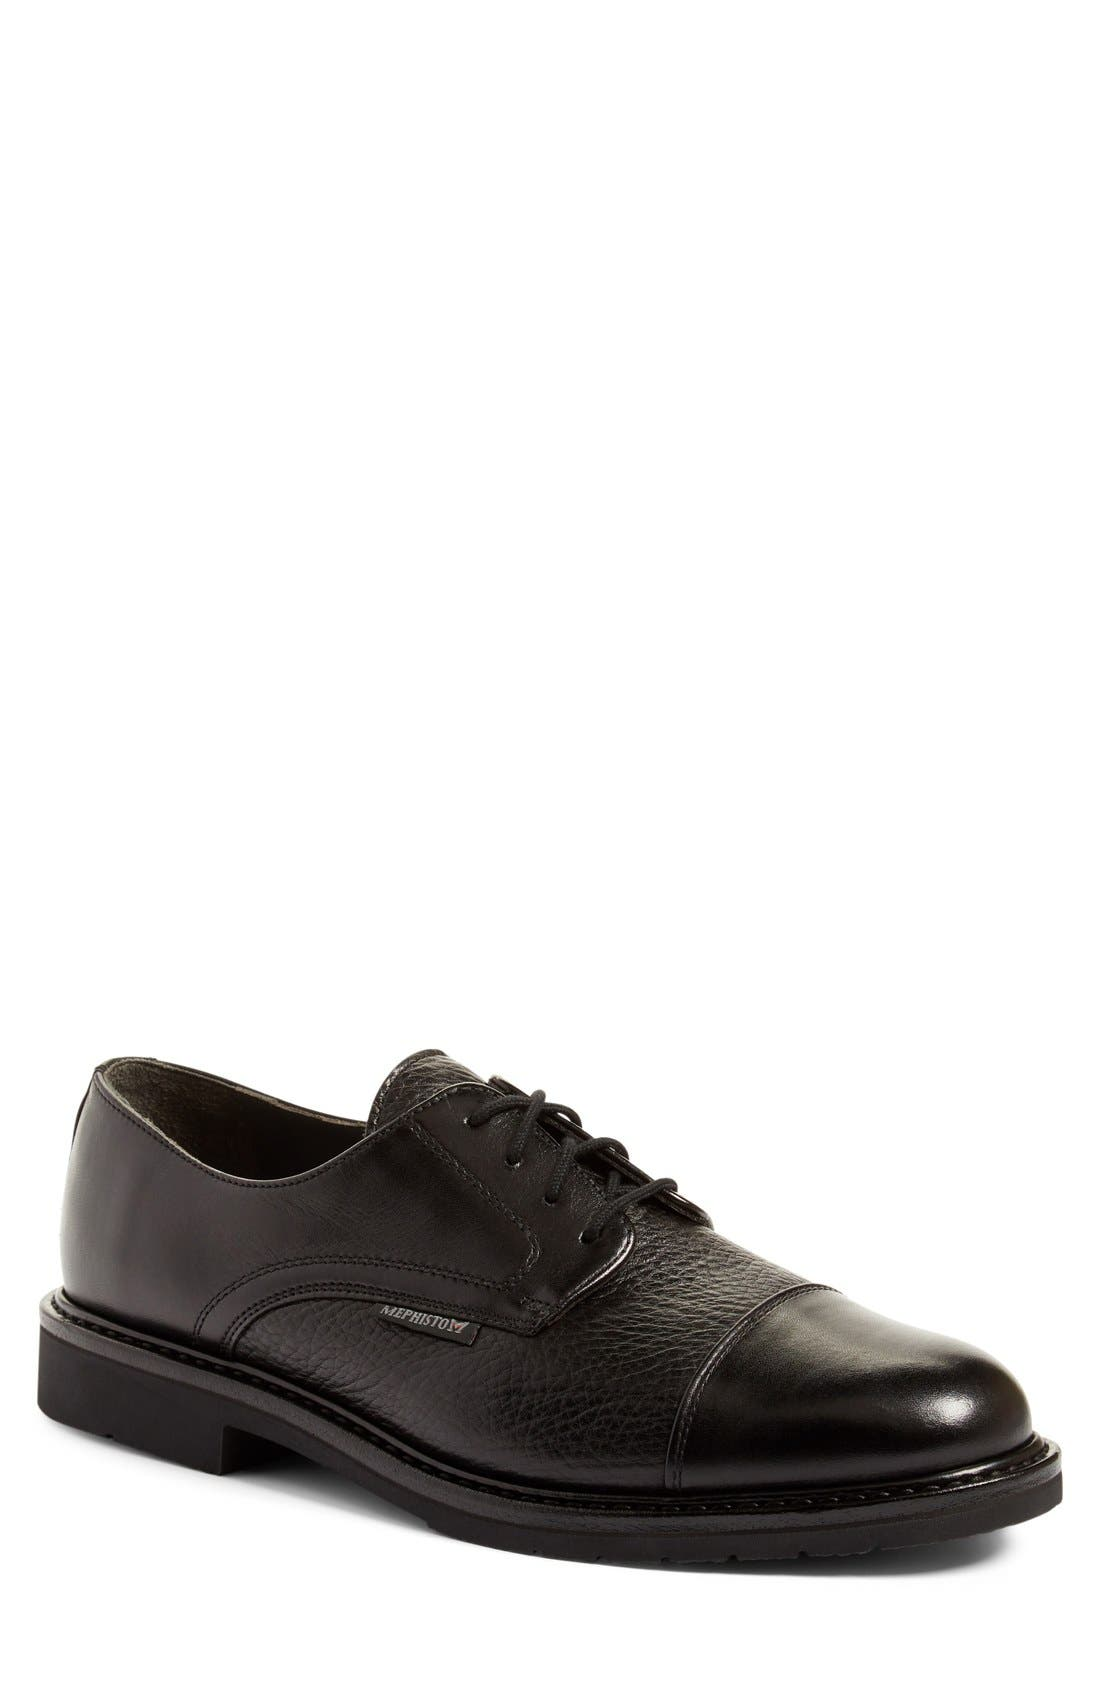 'Melchior' Cap Toe Derby,                             Main thumbnail 1, color,                             Black Leather